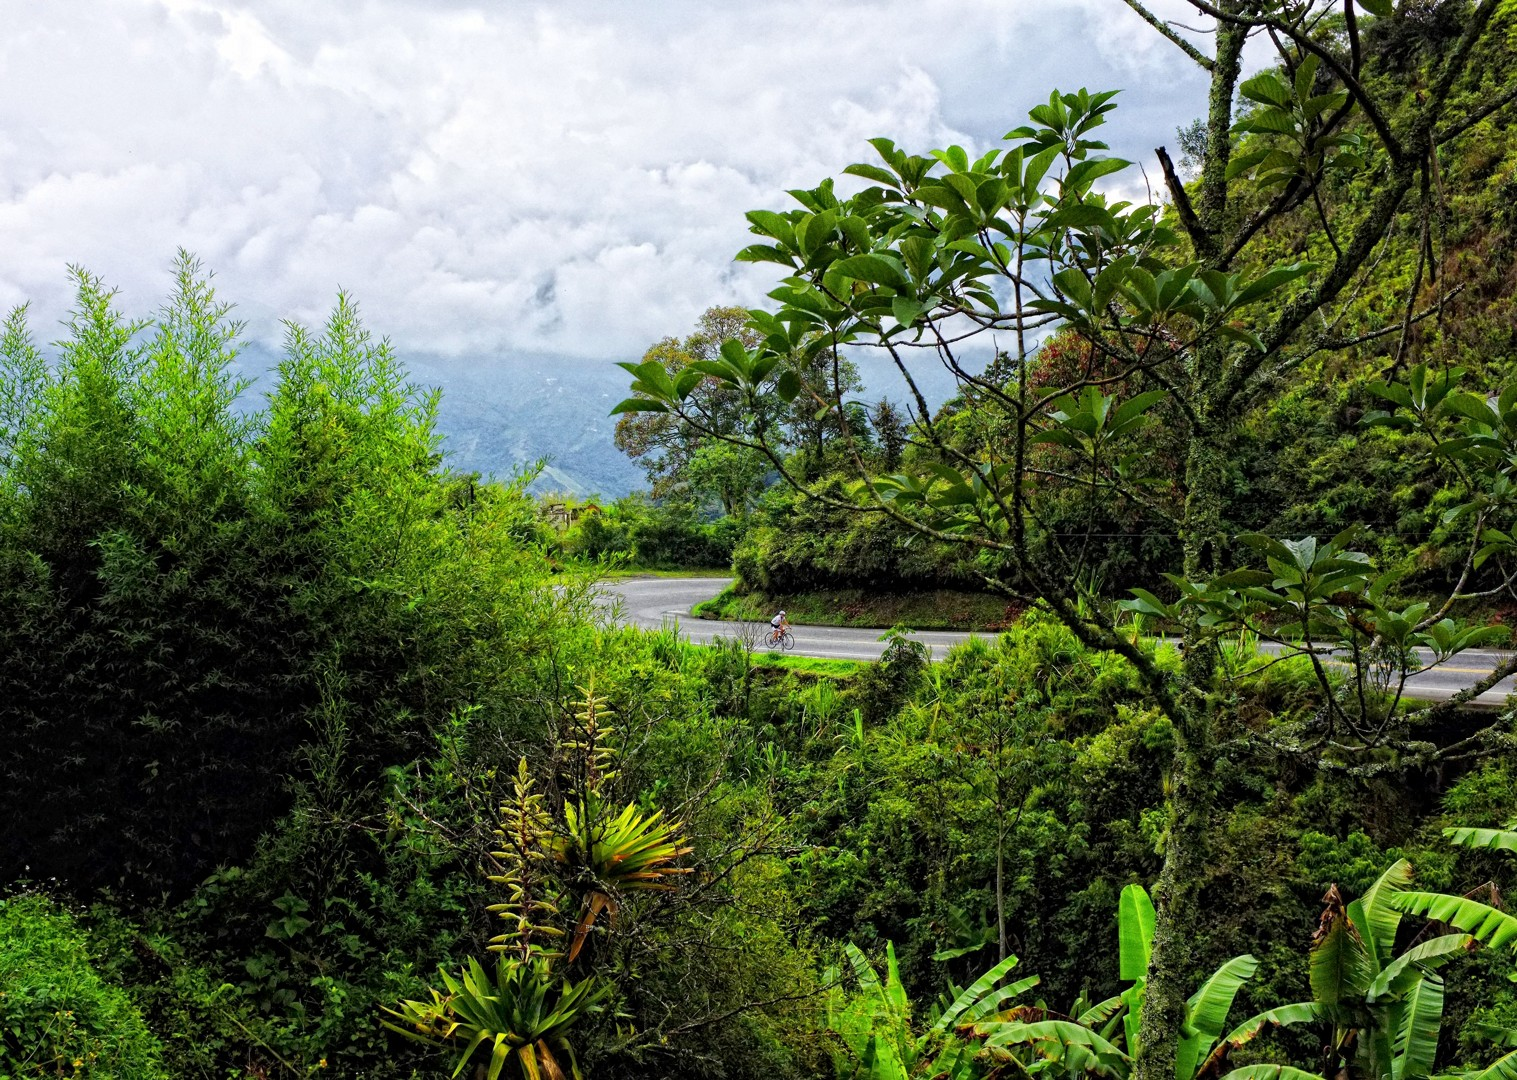 road-cycling-holiday-in-clombia-with-skedaddle.jpg - Colombia - Tres Cordilleras - Guided Road Cycling Holiday - Road Cycling